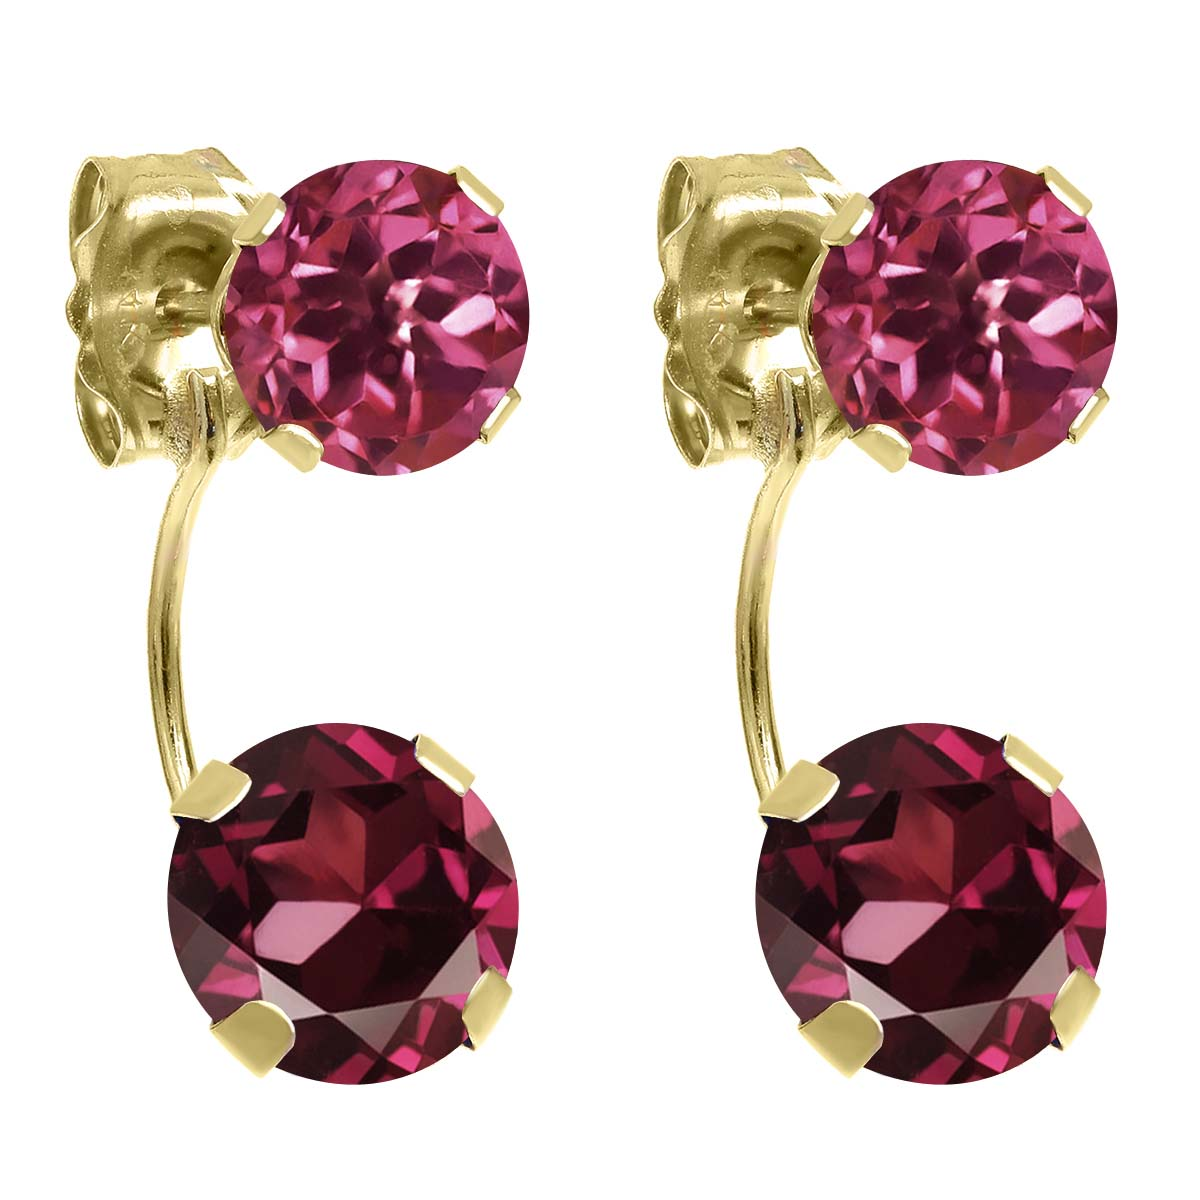 3.00 Ct Round Red Rhodolite Garnet Pink Tourmaline 14K Yellow Gold Earrings by